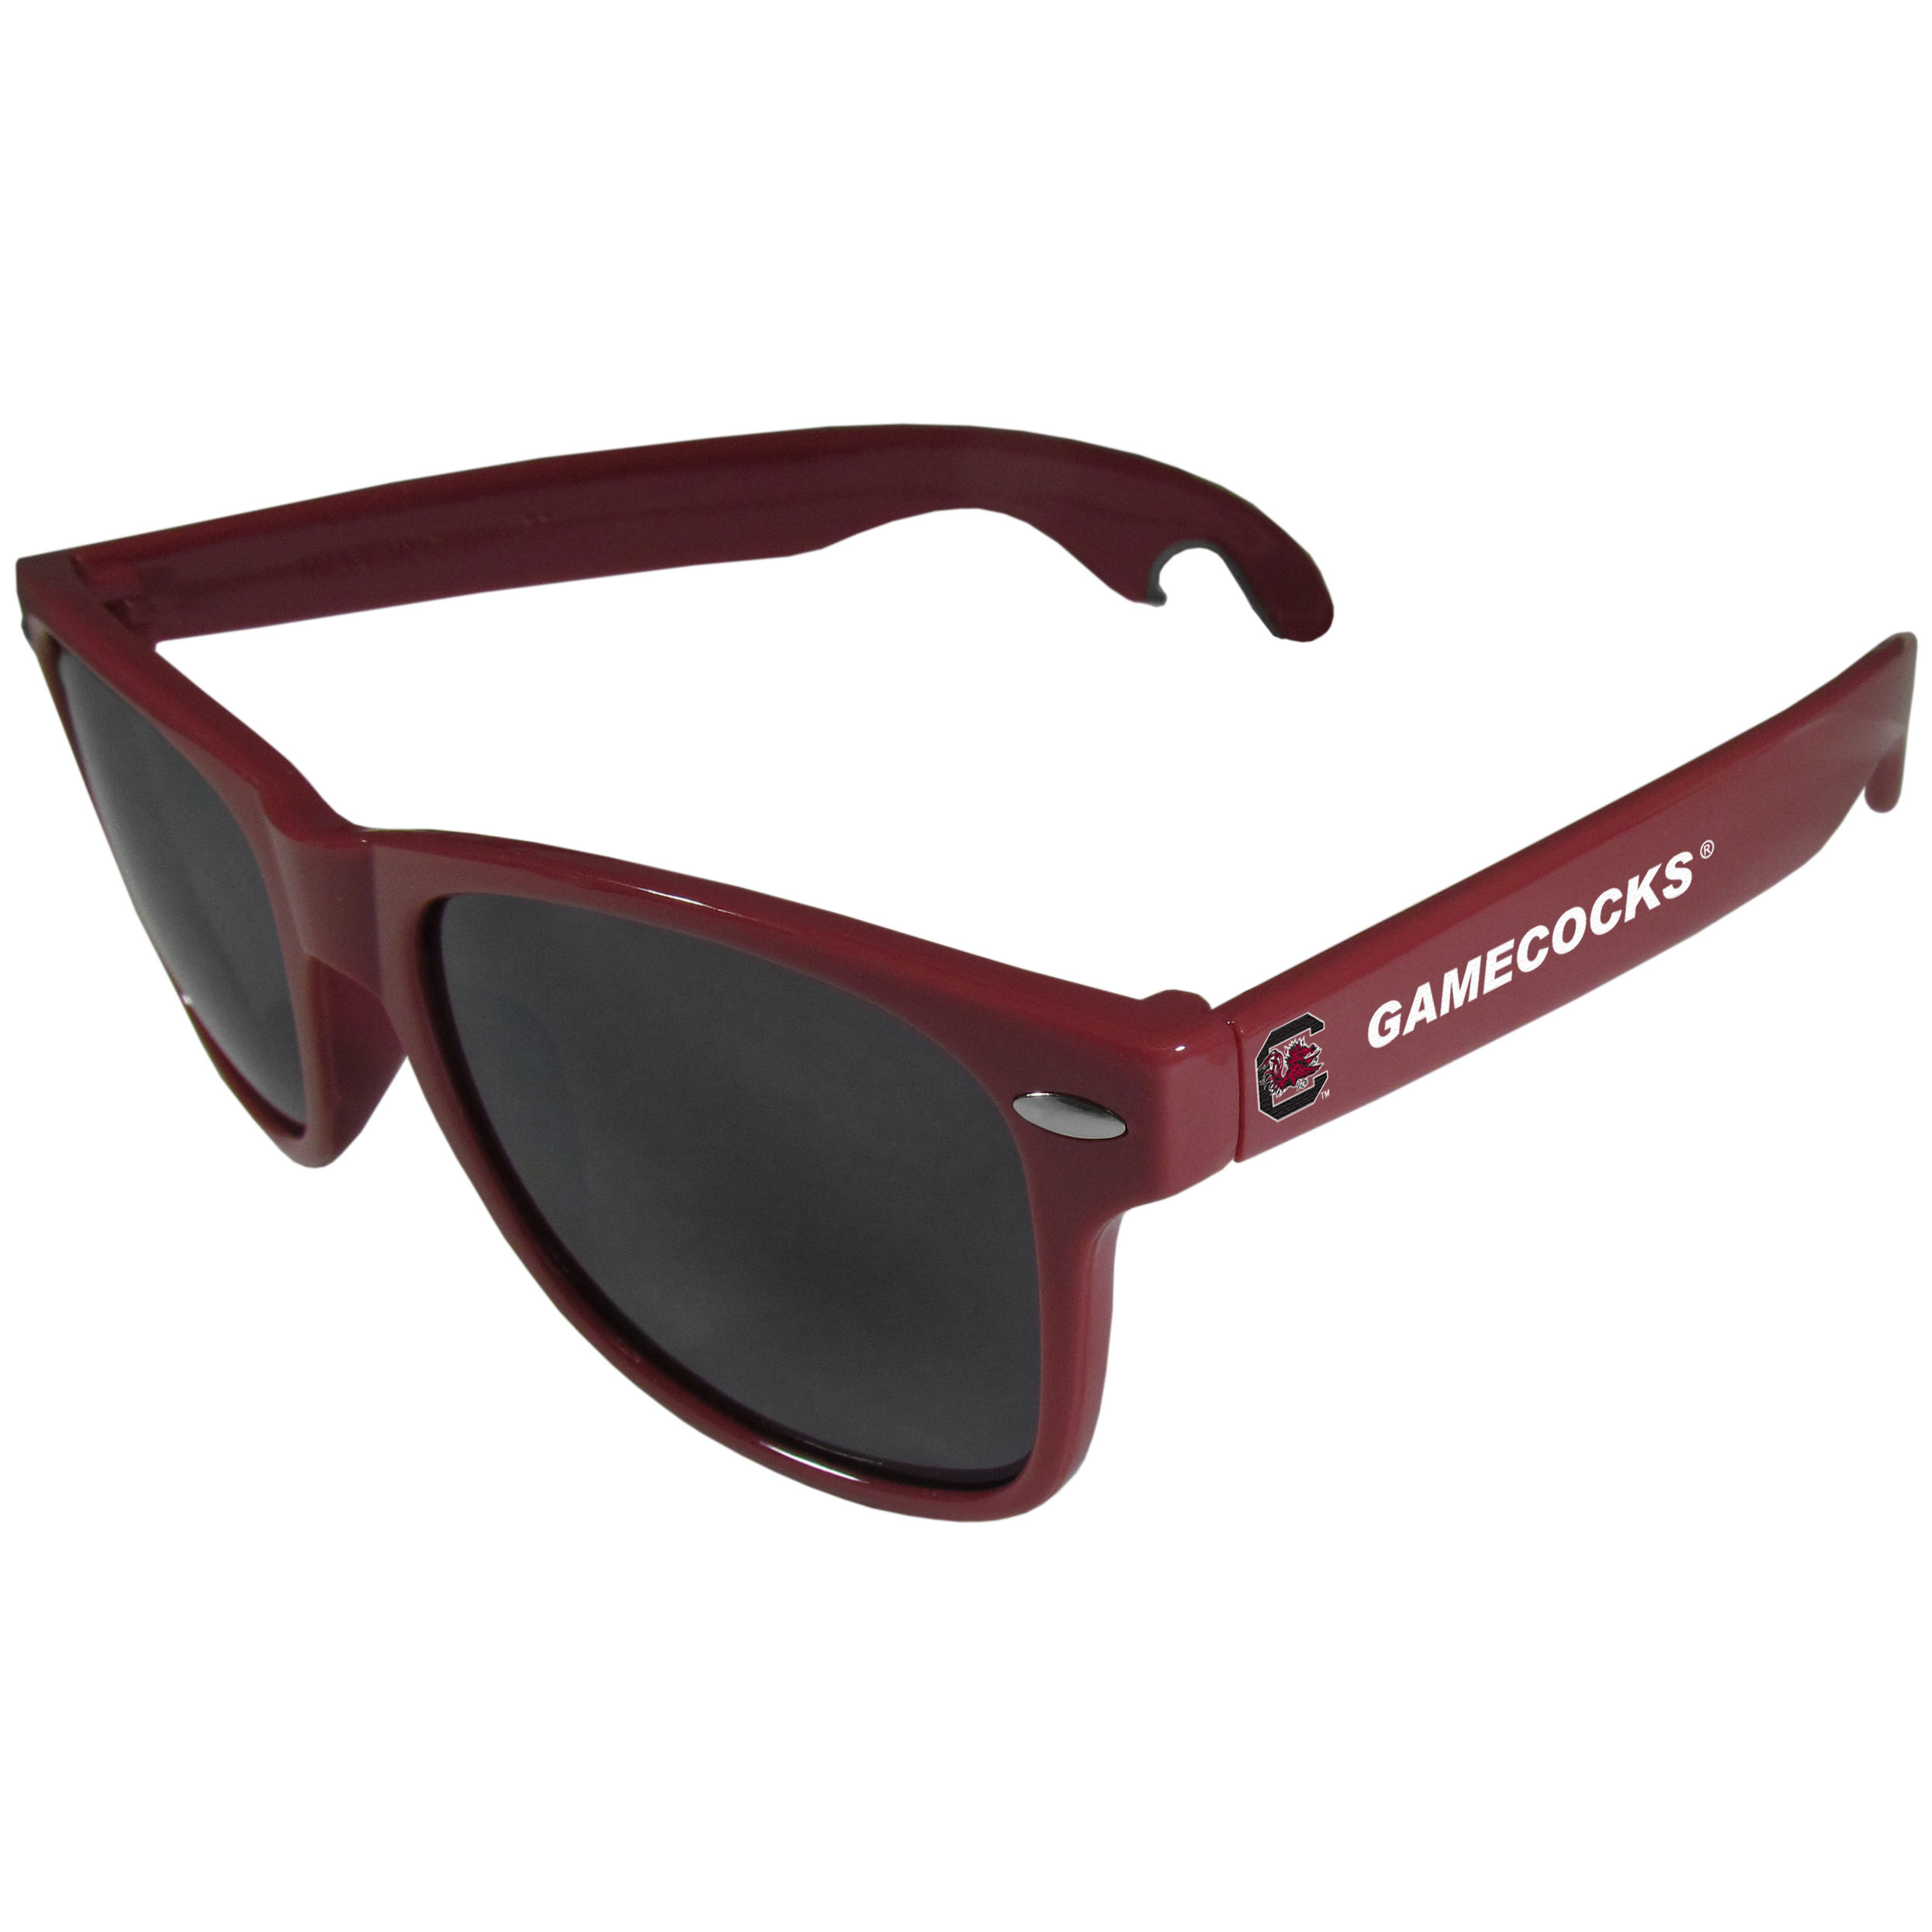 S. Carolina Gamecocks Beachfarer Bottle Opener Sunglasses, Maroon - Seriously, these sunglasses open bottles! Keep the party going with these amazing S. Carolina Gamecocks bottle opener sunglasses. The stylish retro frames feature team designs on the arms and functional bottle openers on the end of the arms. Whether you are at the beach or having a backyard BBQ on game day, these shades will keep your eyes protected with 100% UVA/UVB protection and keep you hydrated with the handy bottle opener arms.